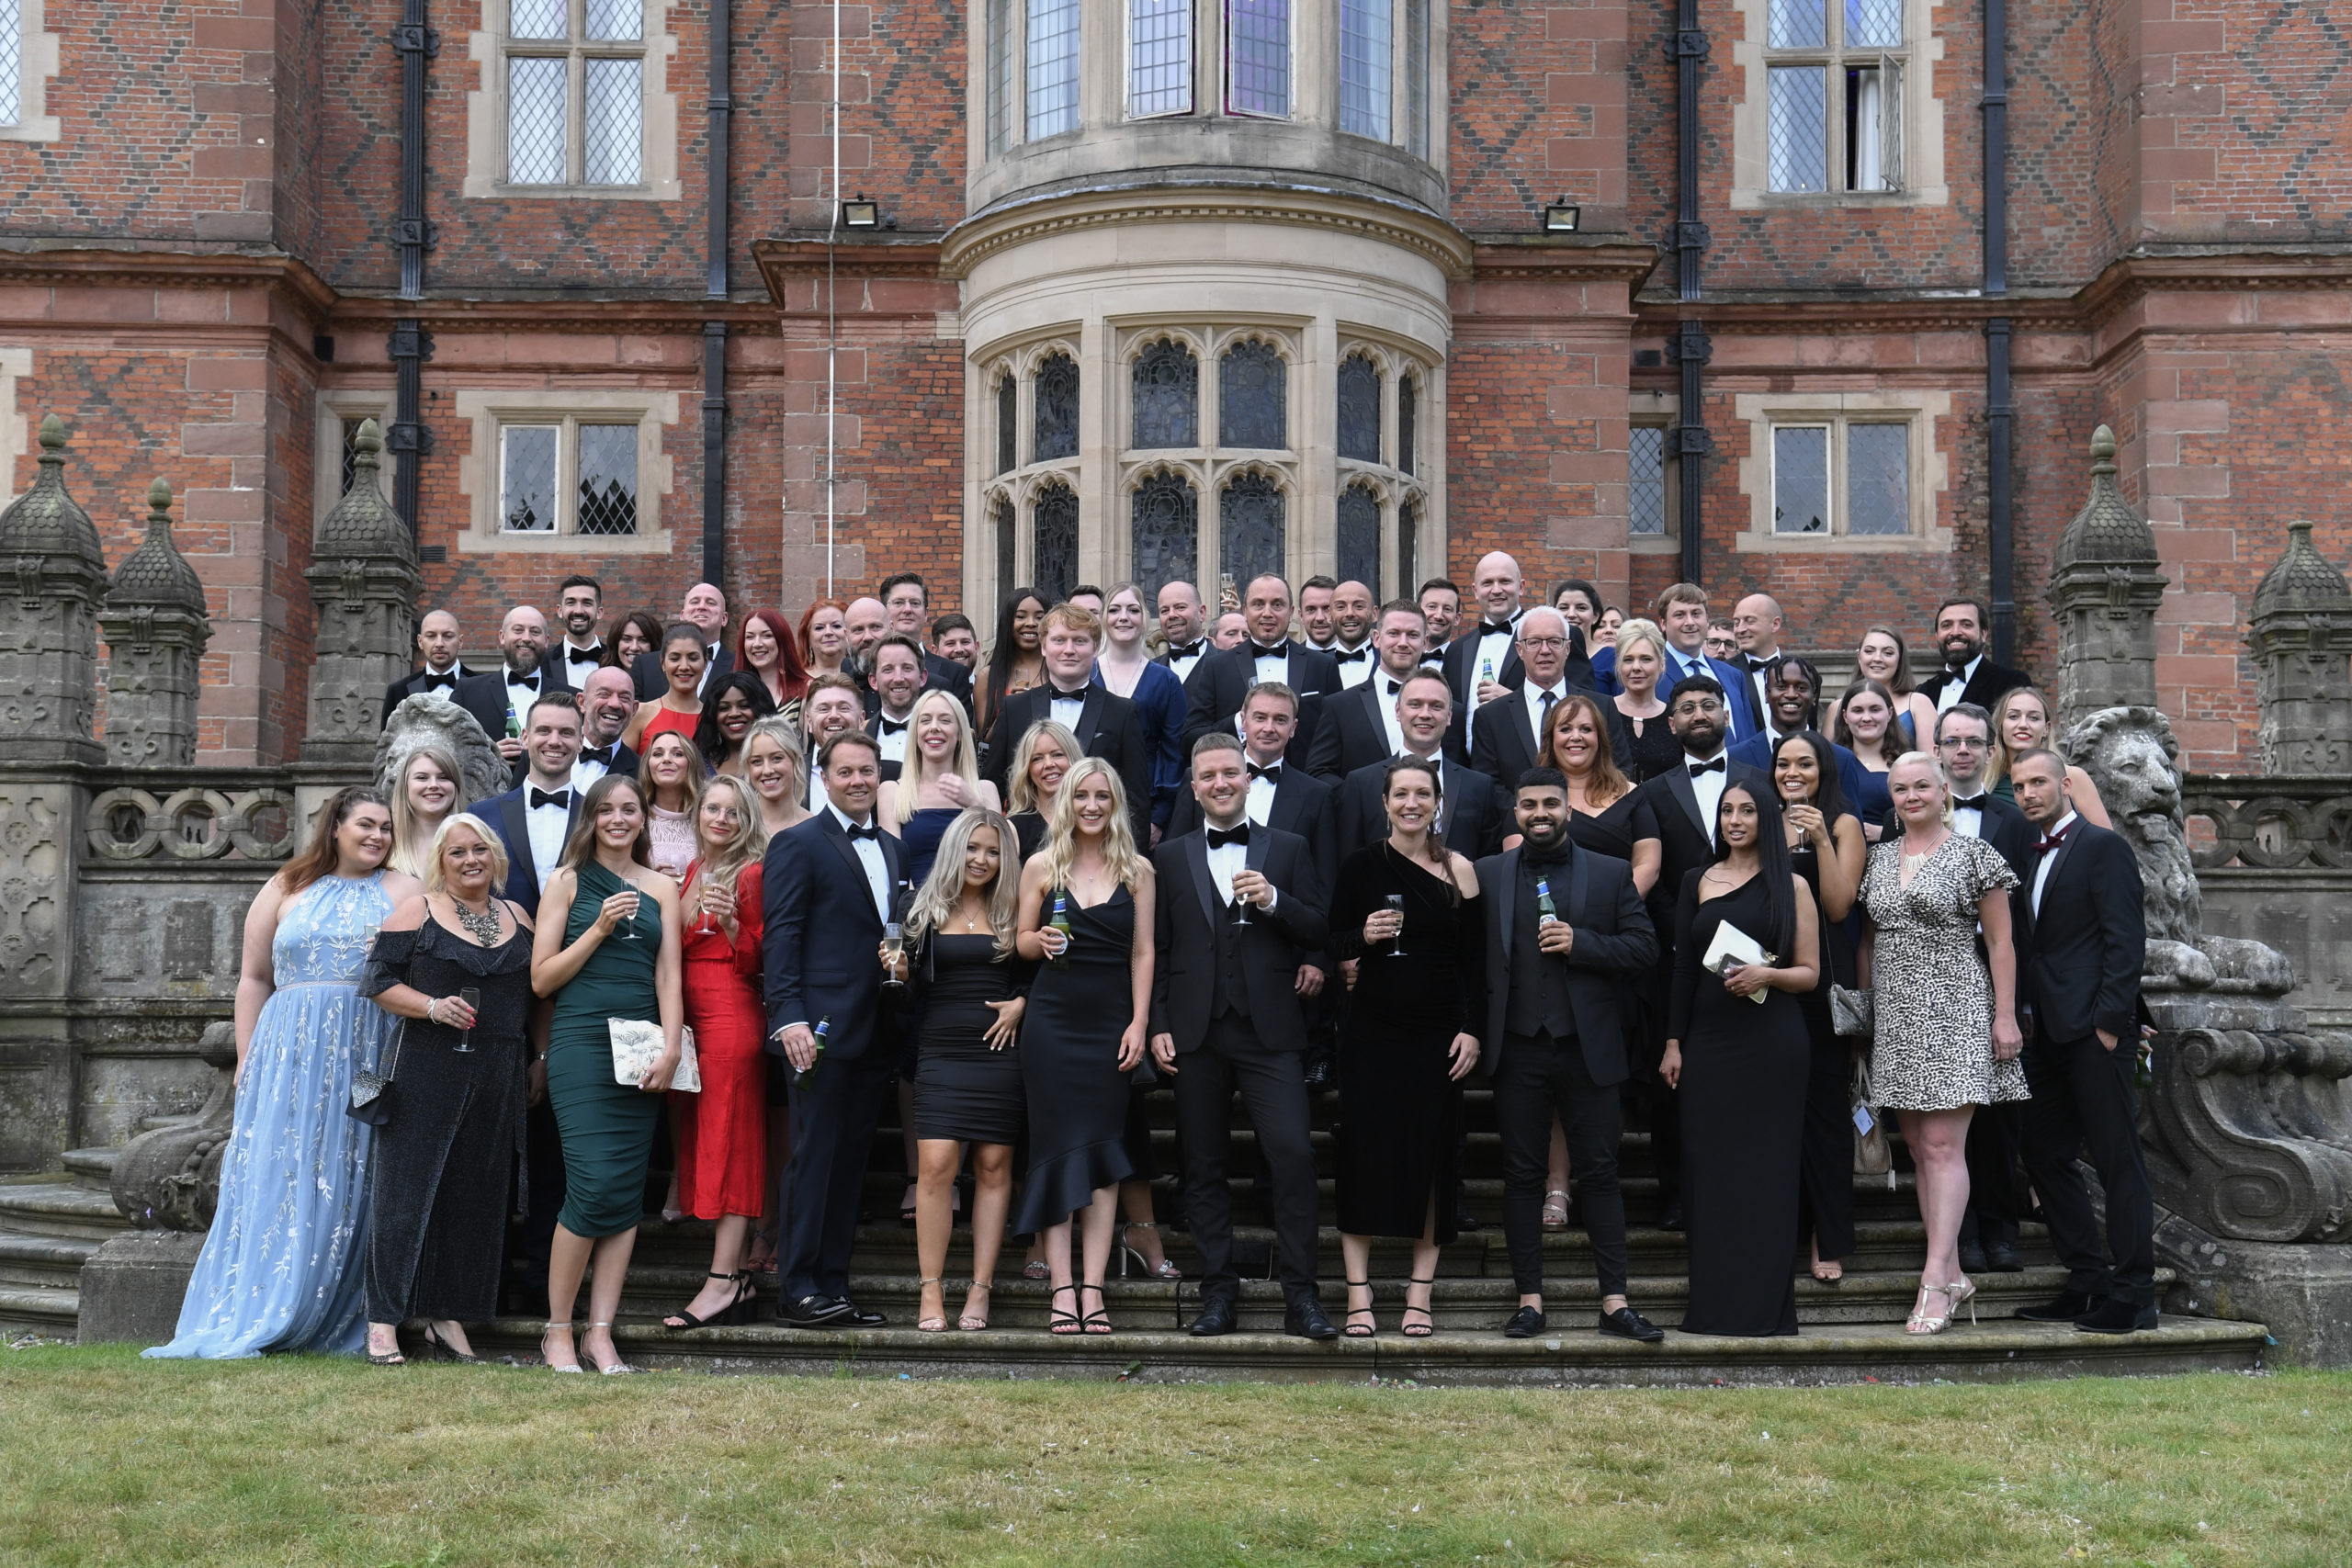 HA2021 High Achievers event group photo of co-members outside Crewe Hall